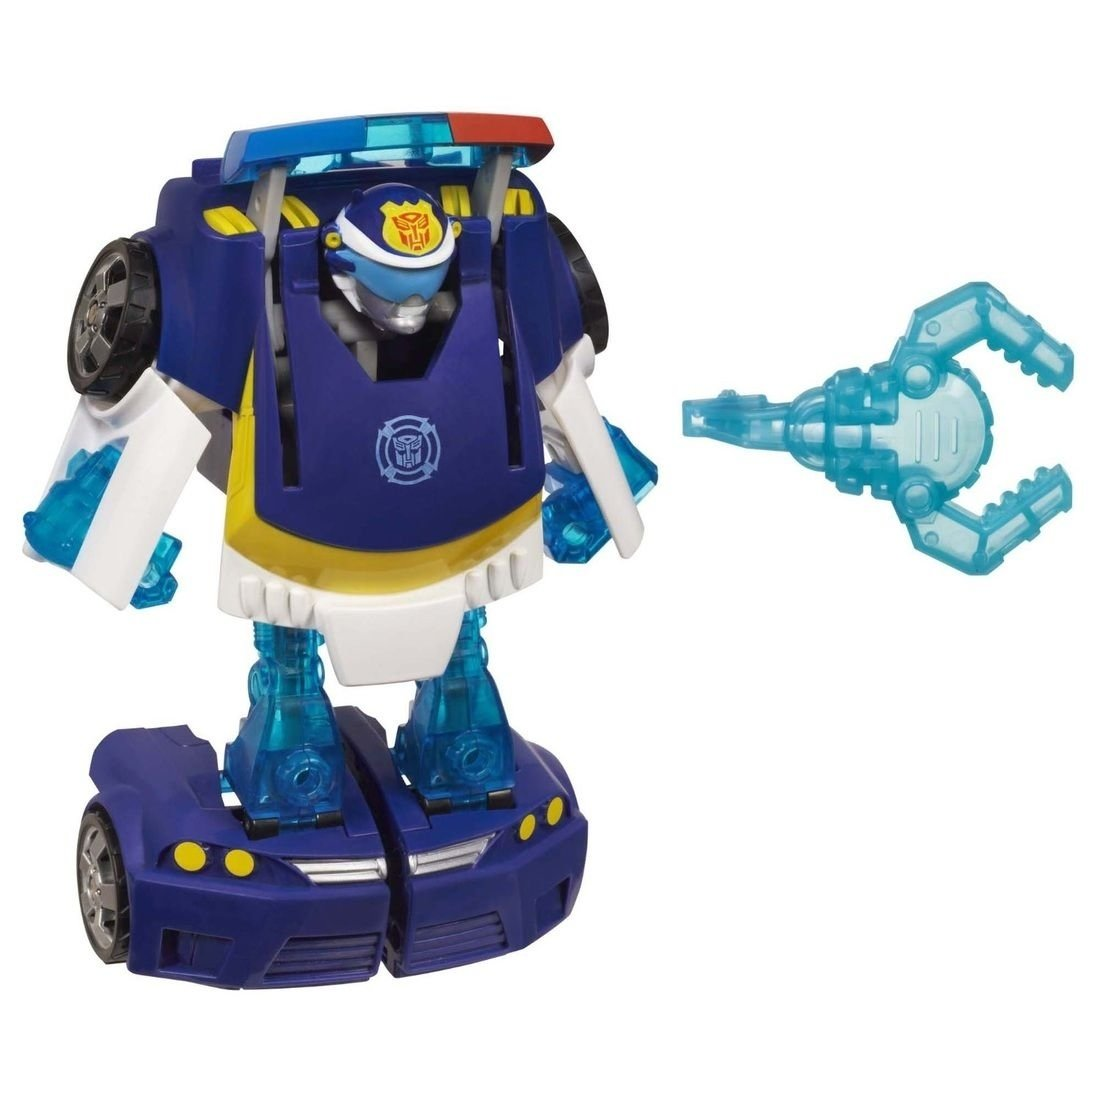 10 Fabulous Gift Idea For 5 Year Old Boy playskool heroes transformers figure best gift for 4 year old